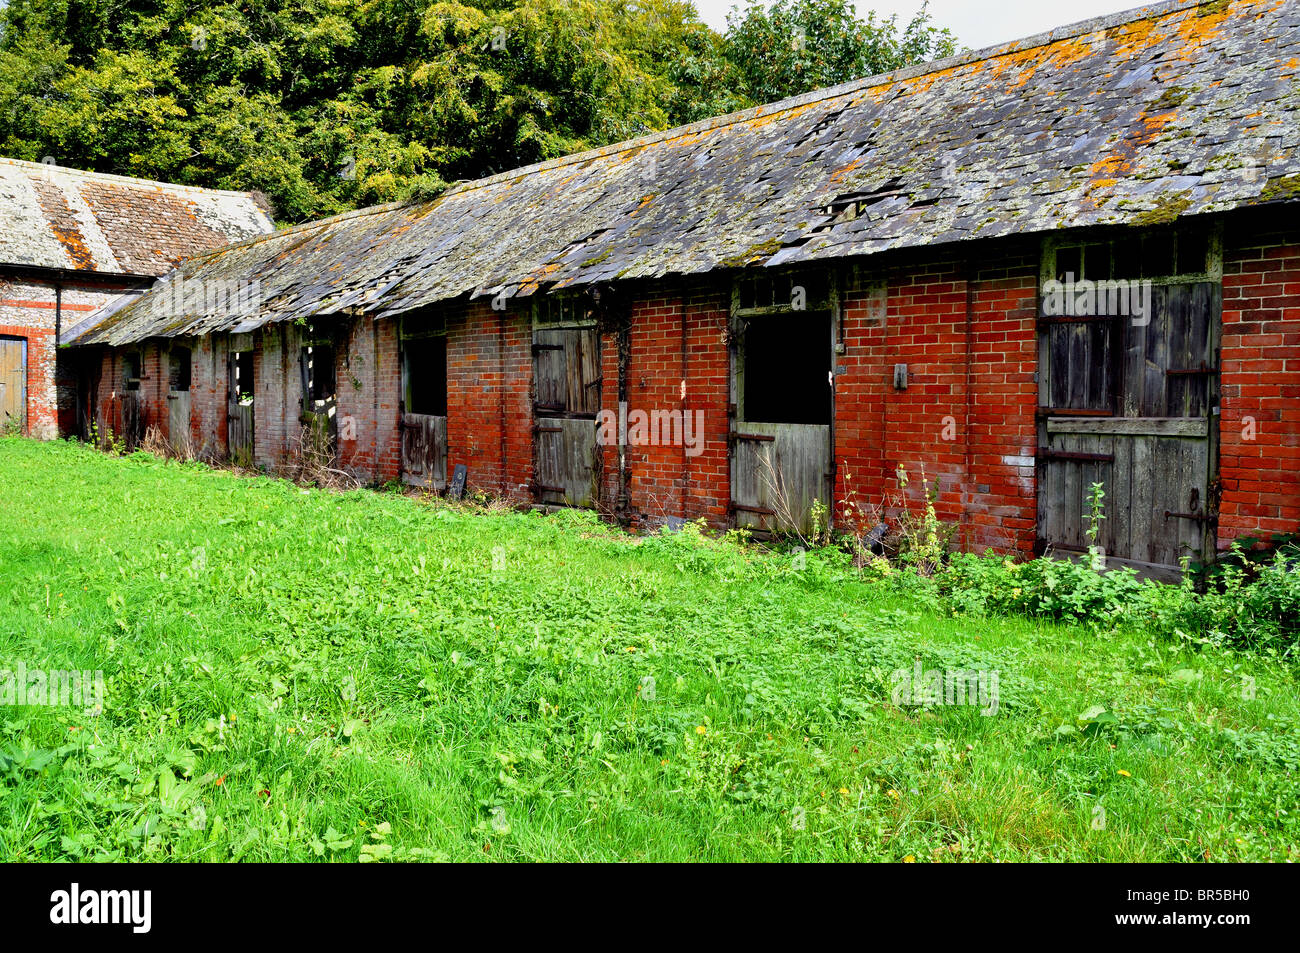 Derelict horse stables - Stock Image